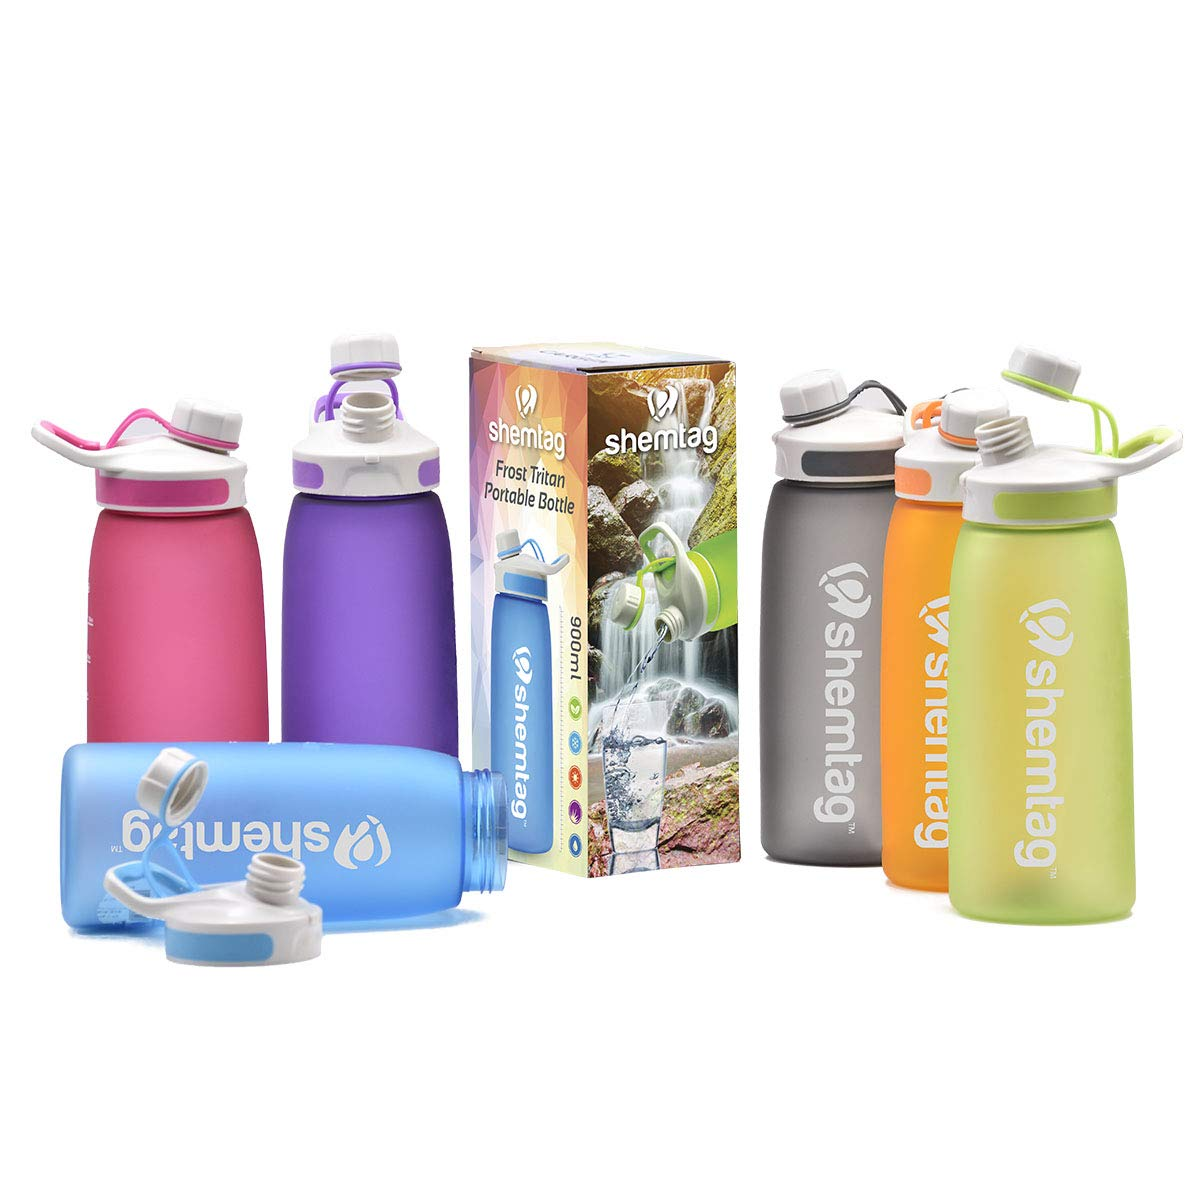 Shemtag Color Water Bottle-Tritan Water Bottle 30oz 900ml Wth Screw Cap BPA-Free for Sports & Camping